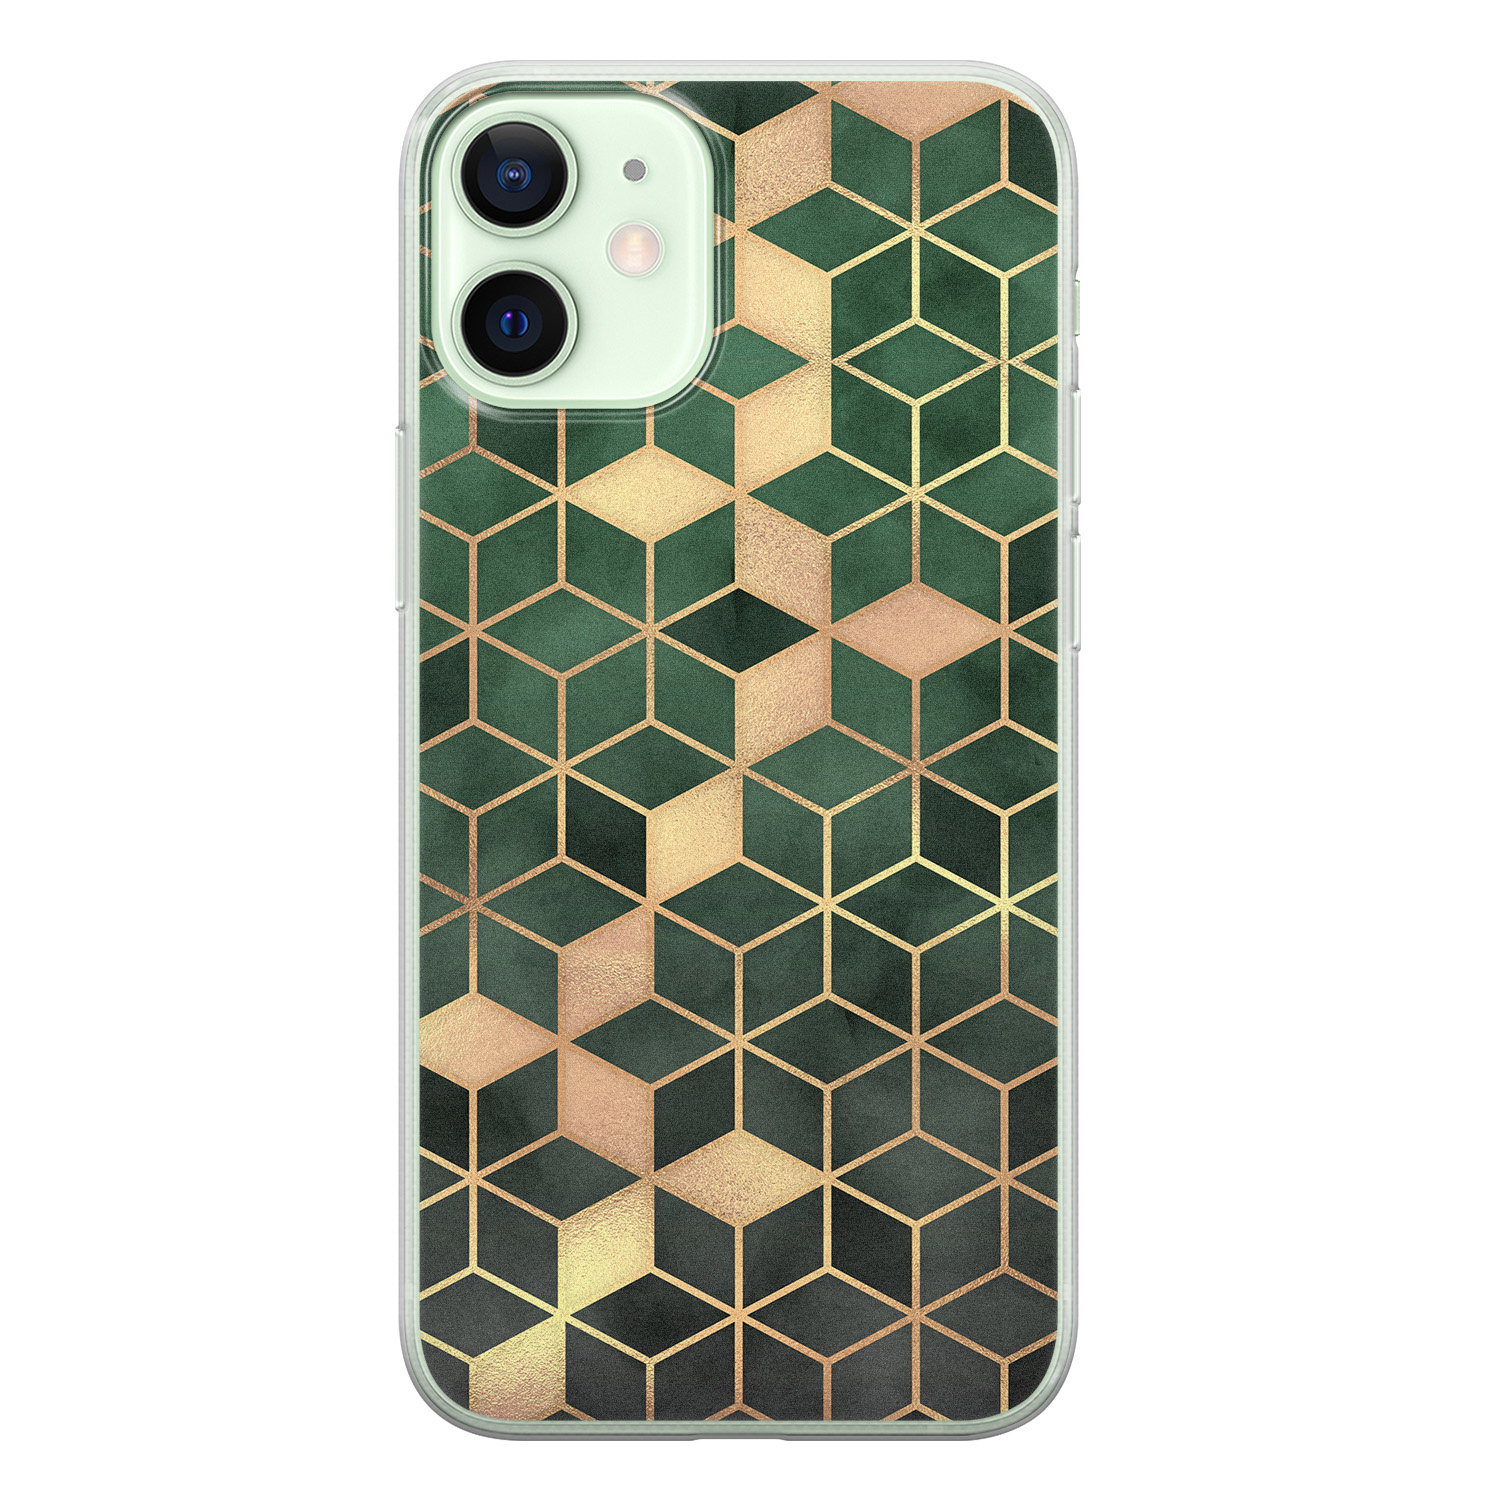 iPhone 12 mini siliconen hoesje - Green cubes